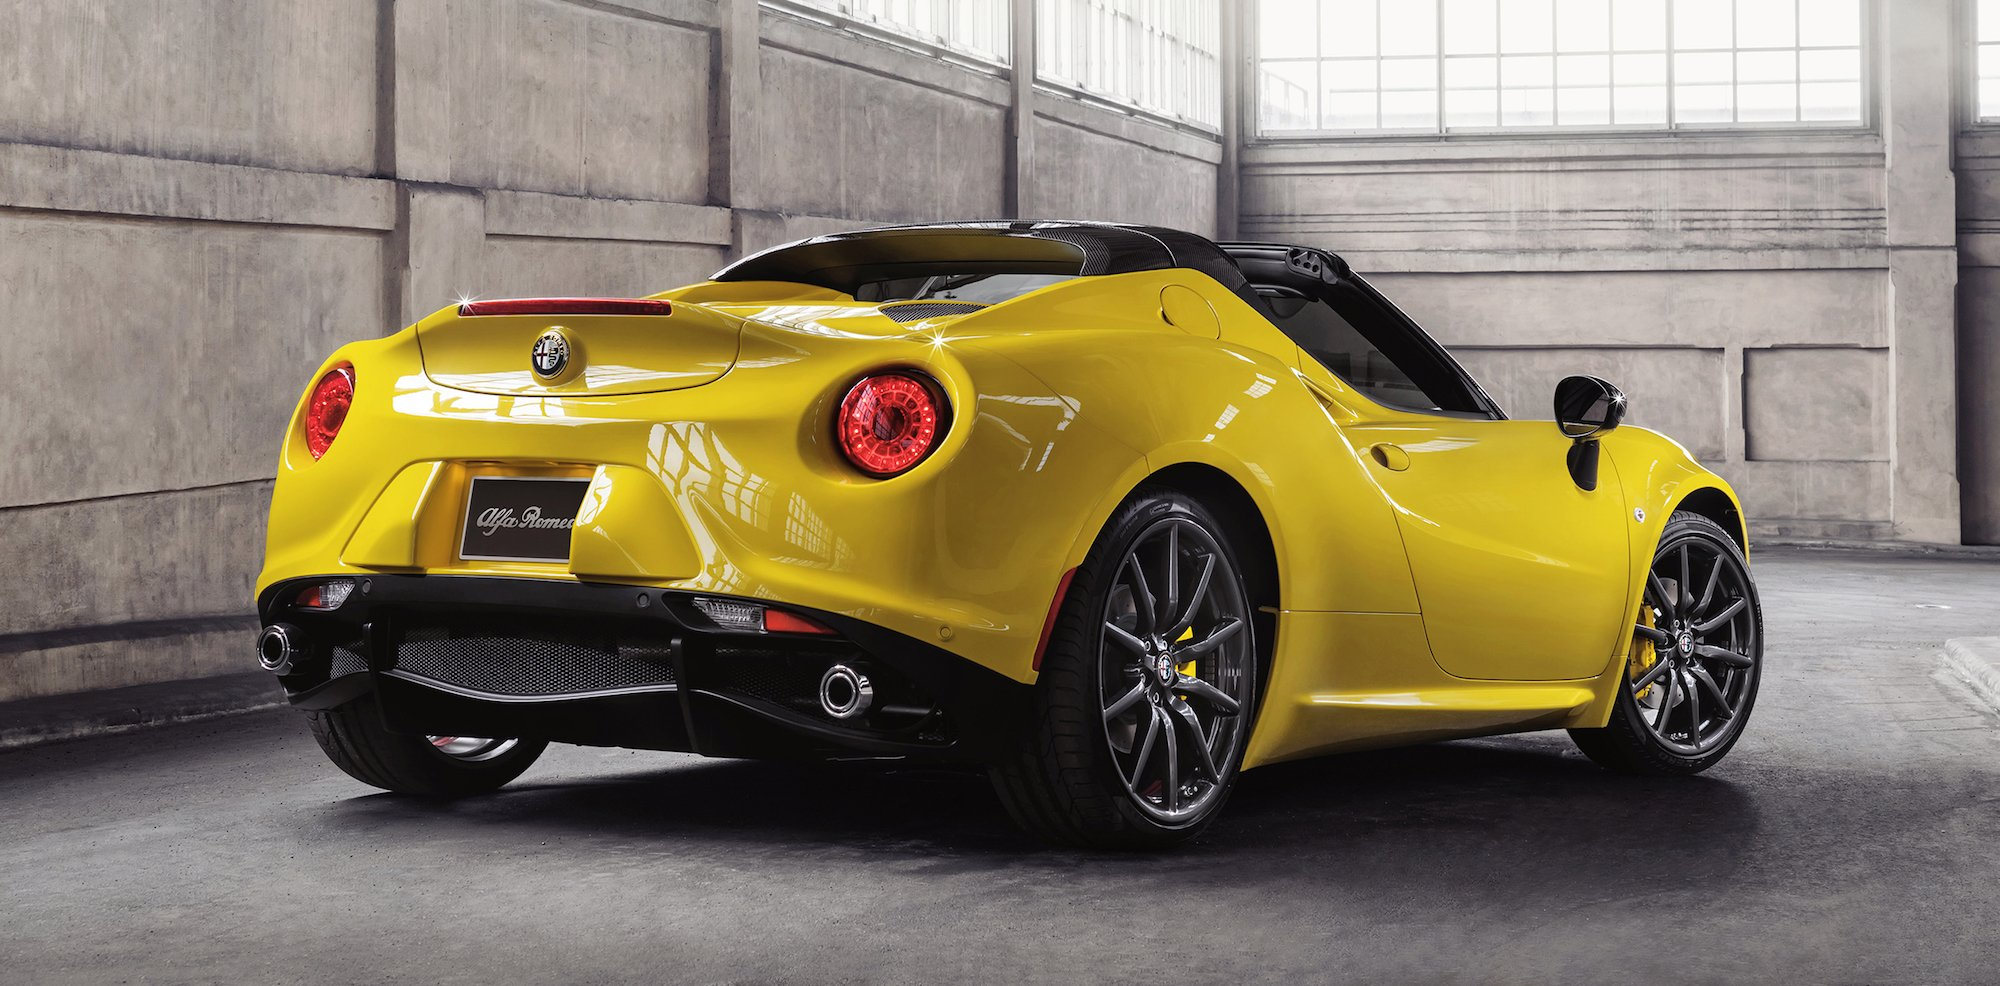 alfa romeo 4c spider gets sub 100k price tag photos caradvice. Black Bedroom Furniture Sets. Home Design Ideas